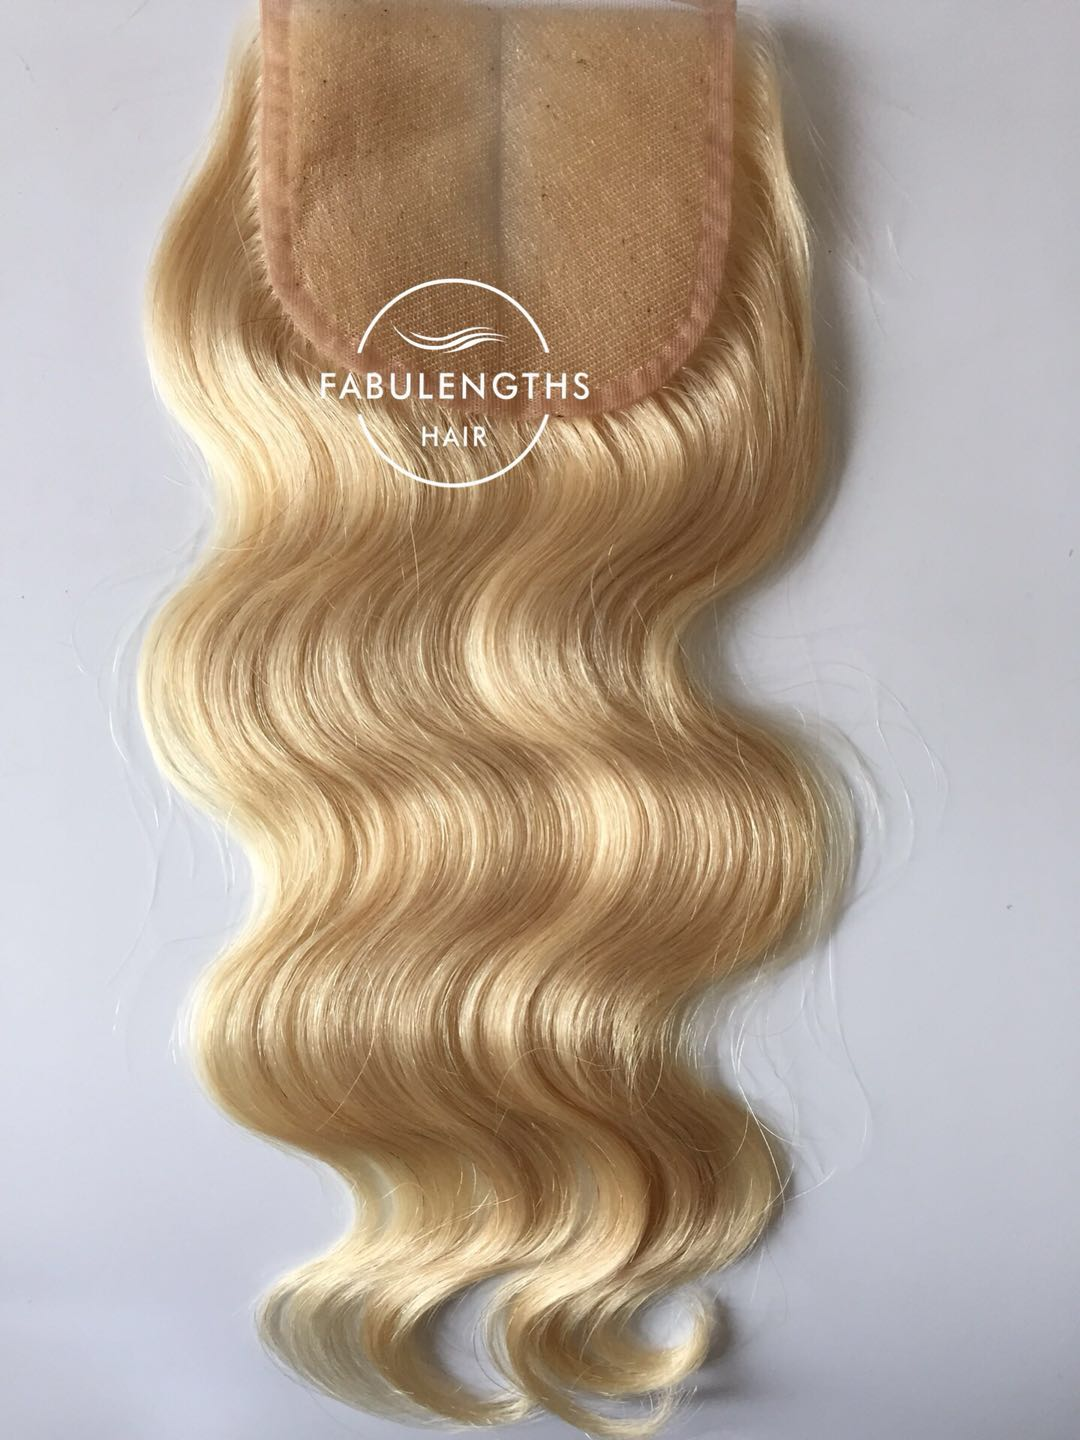 613 closure china 613 closure manufacturer from fabulengths hair